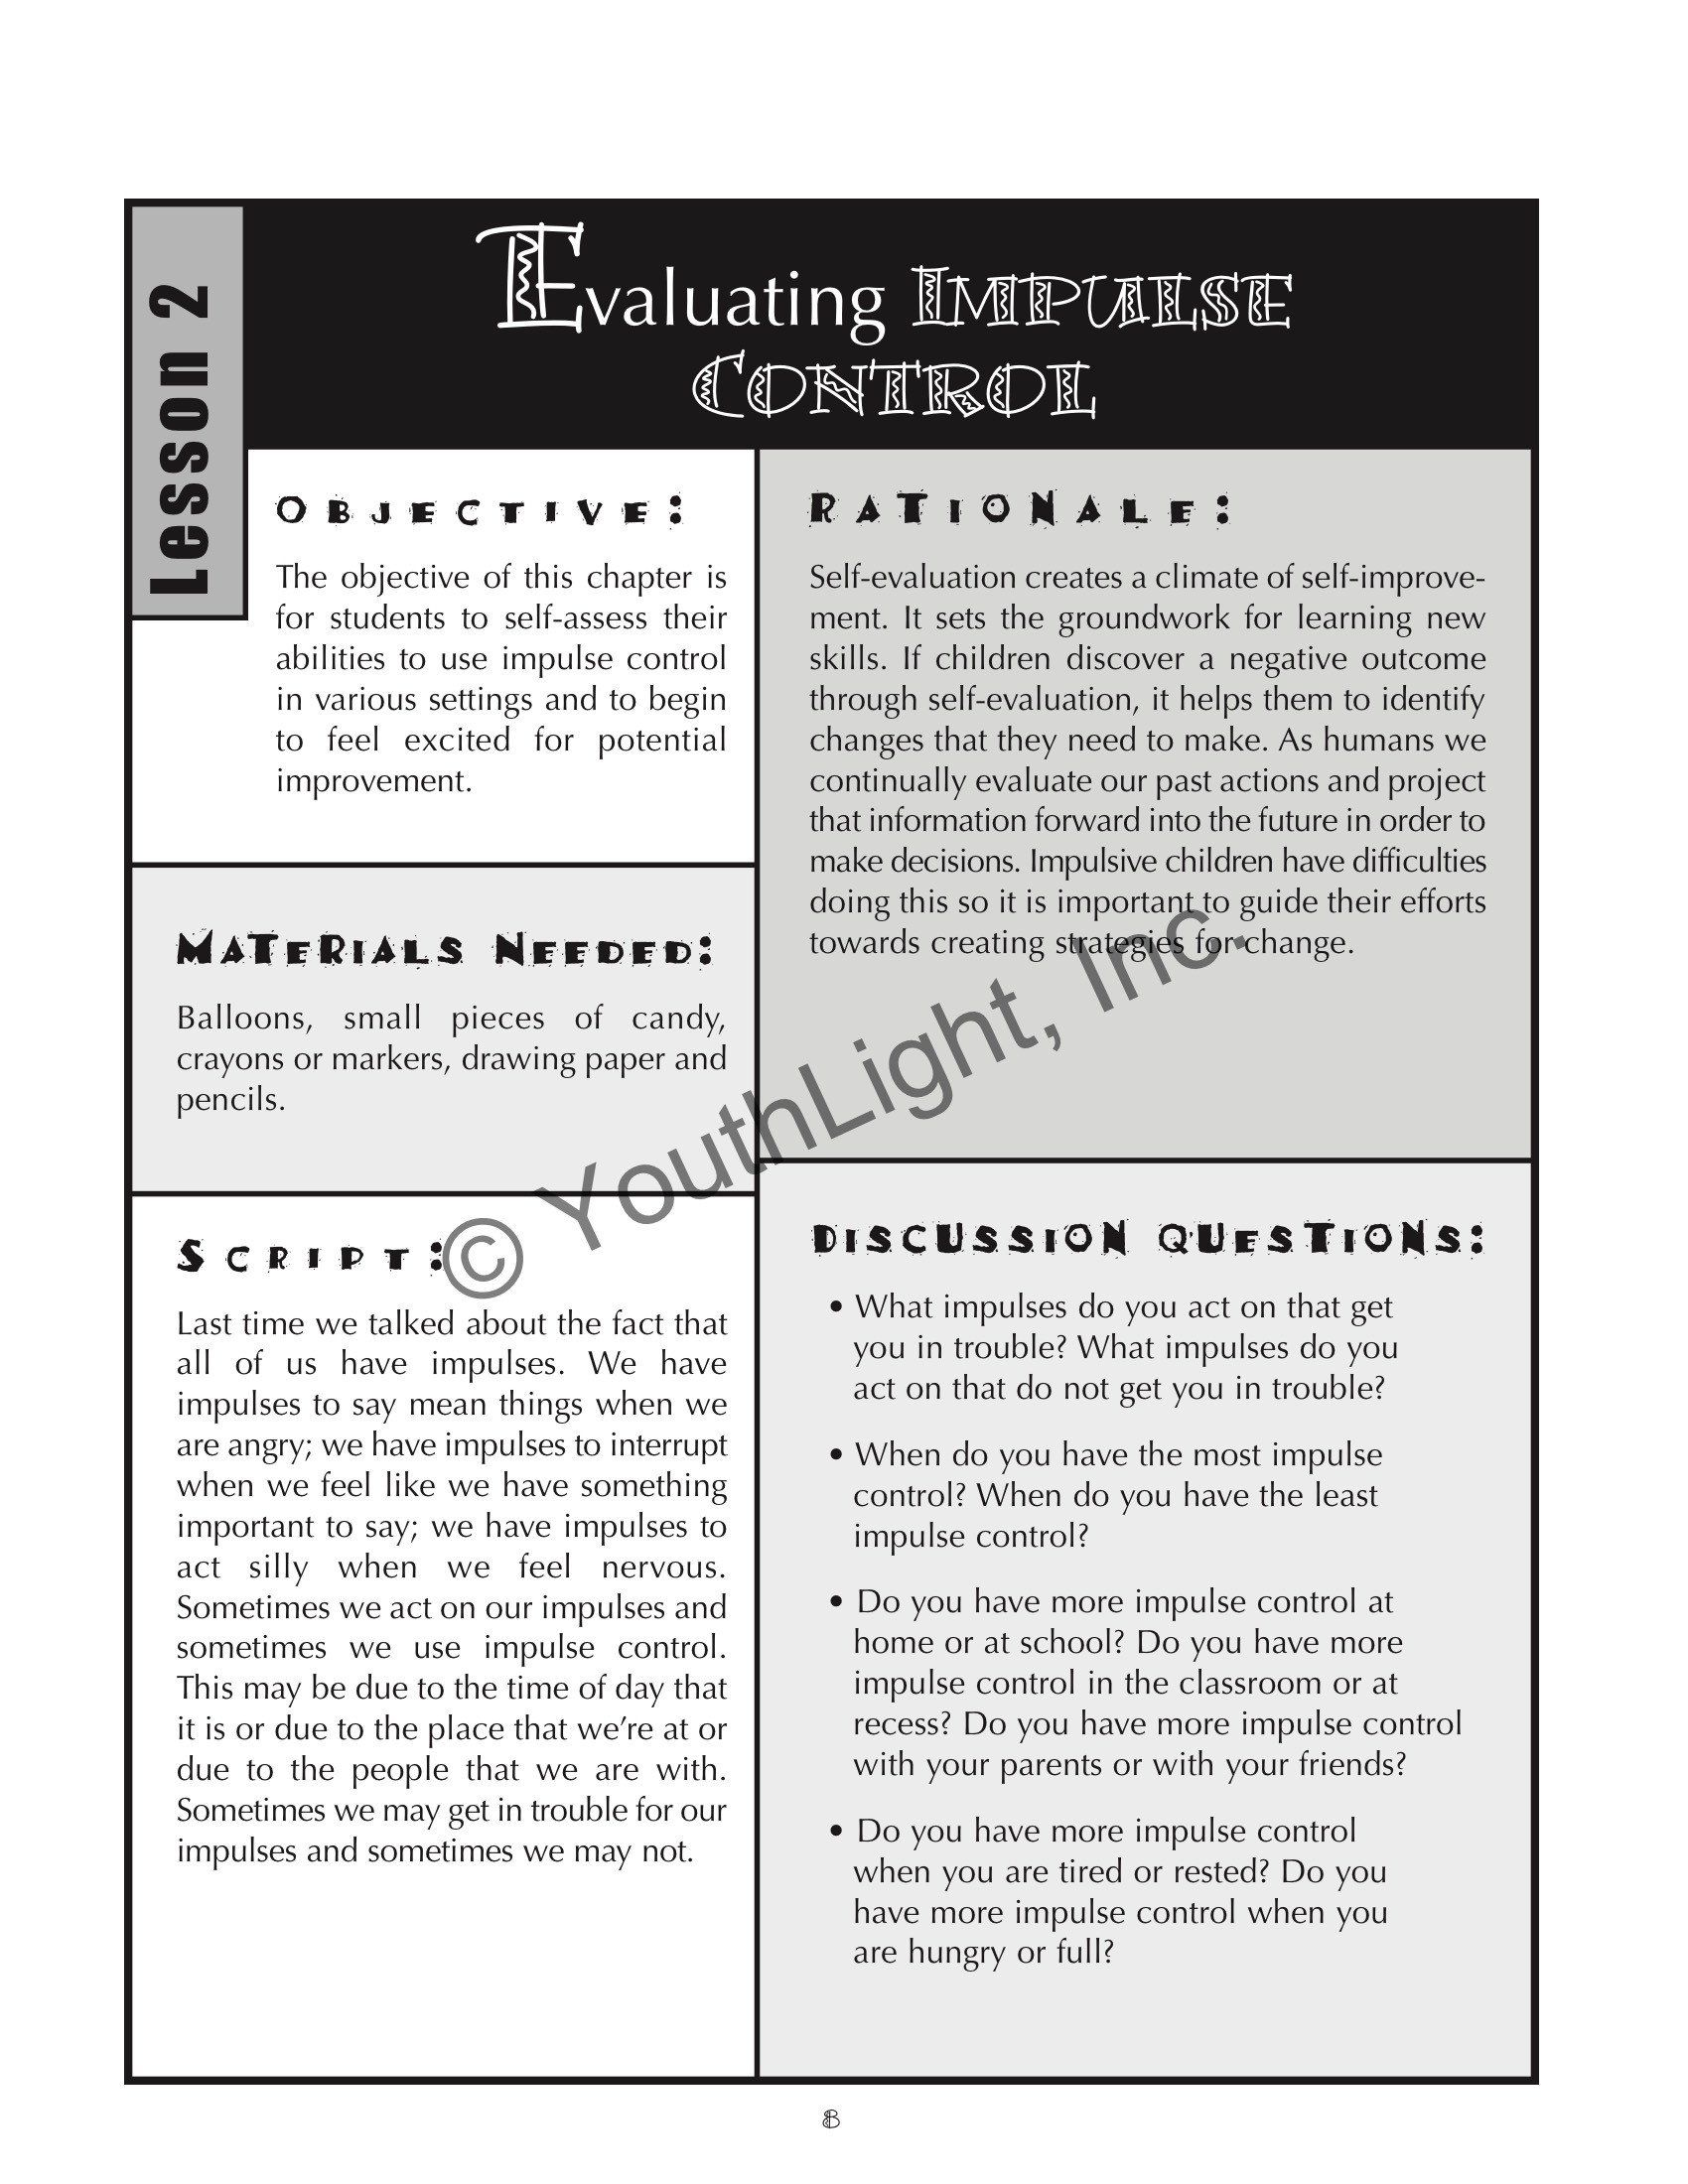 Stop Think Act Review Worksheet Impulse Control Activities